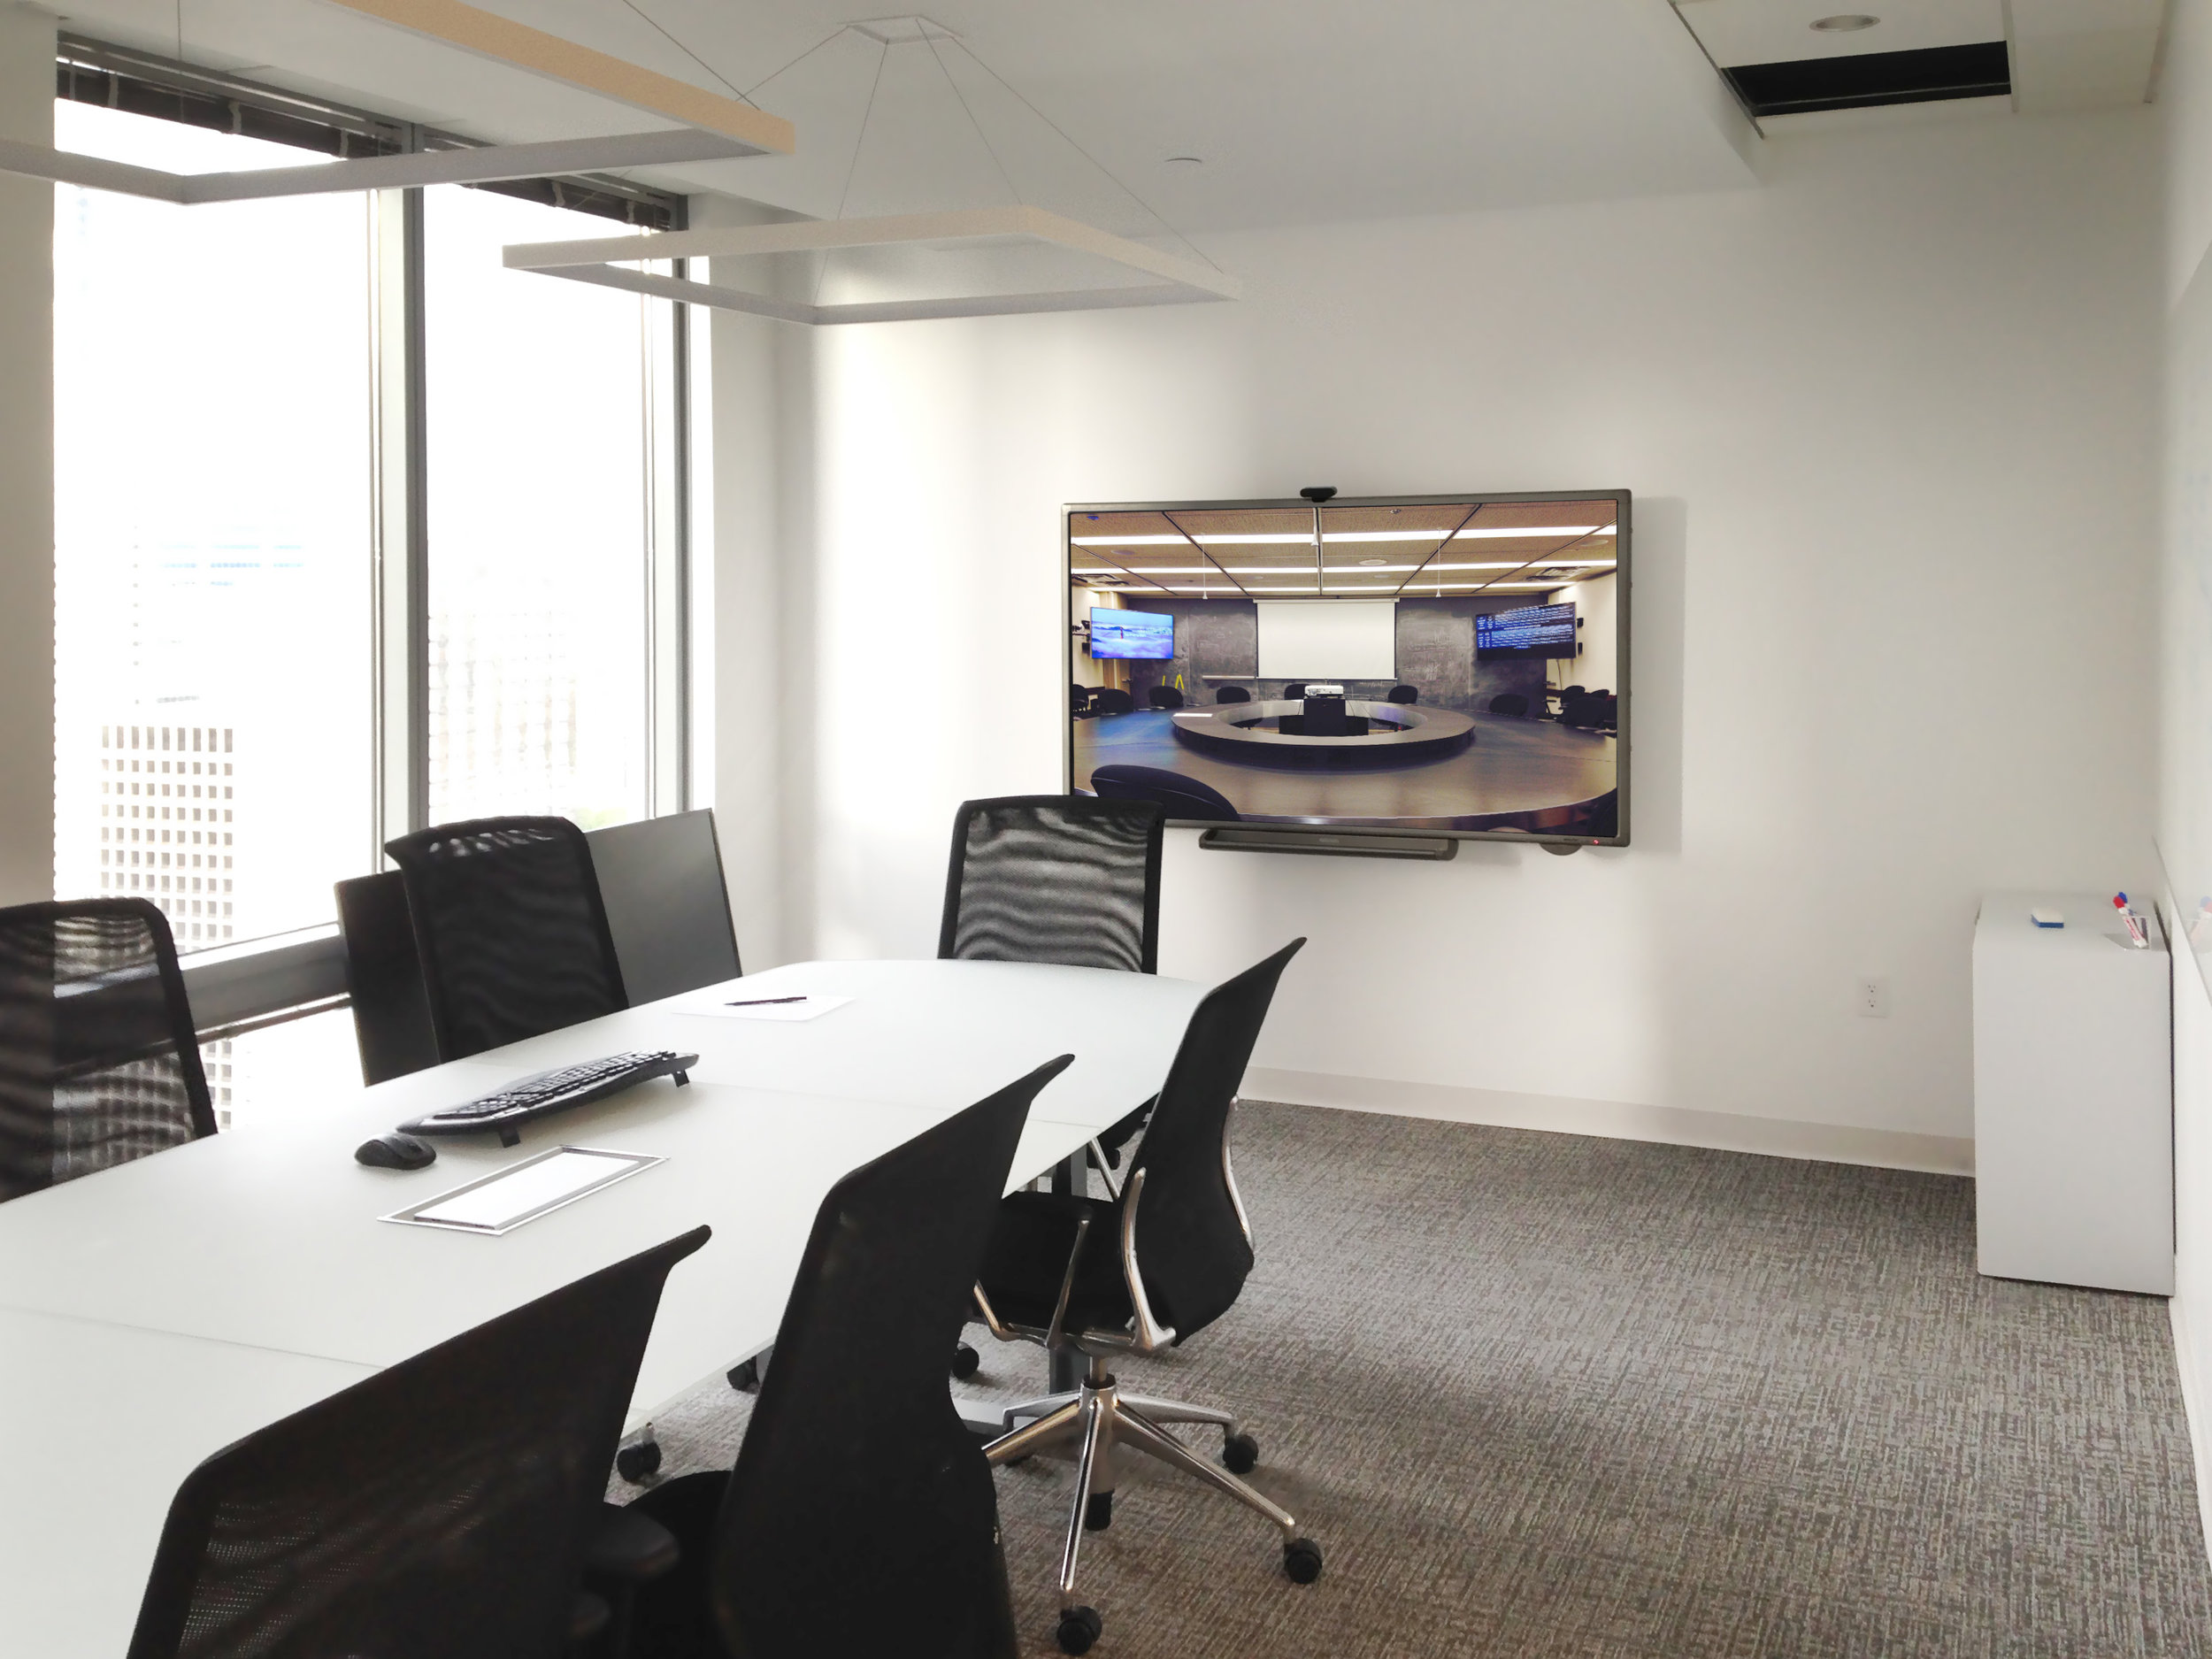 A touch sceen display is connected to a remote room. The DTen interactive display allows users to annotate overtop of an active video conference and it's presented slides to further enhance real time, site-to-site collaboration.